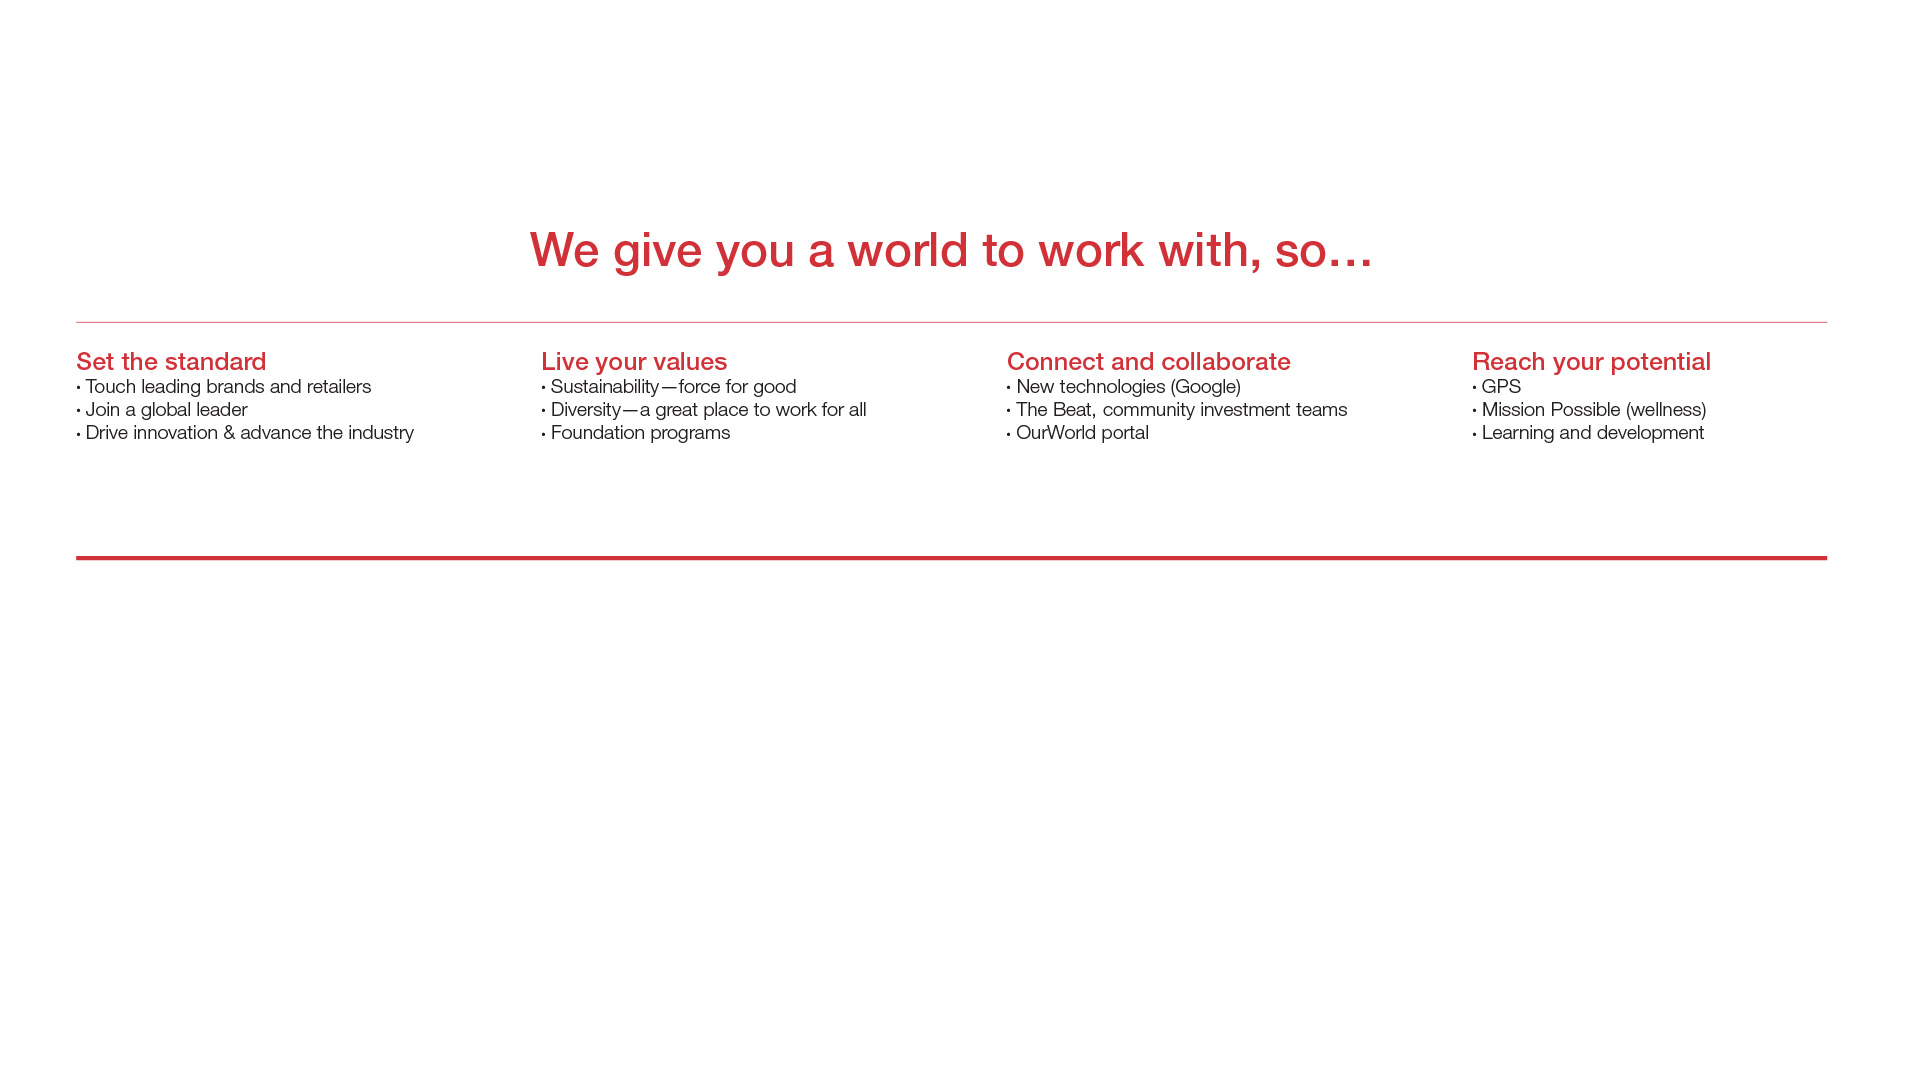 Avery Dennison employer brand platform and messaging. We give you a world to work with